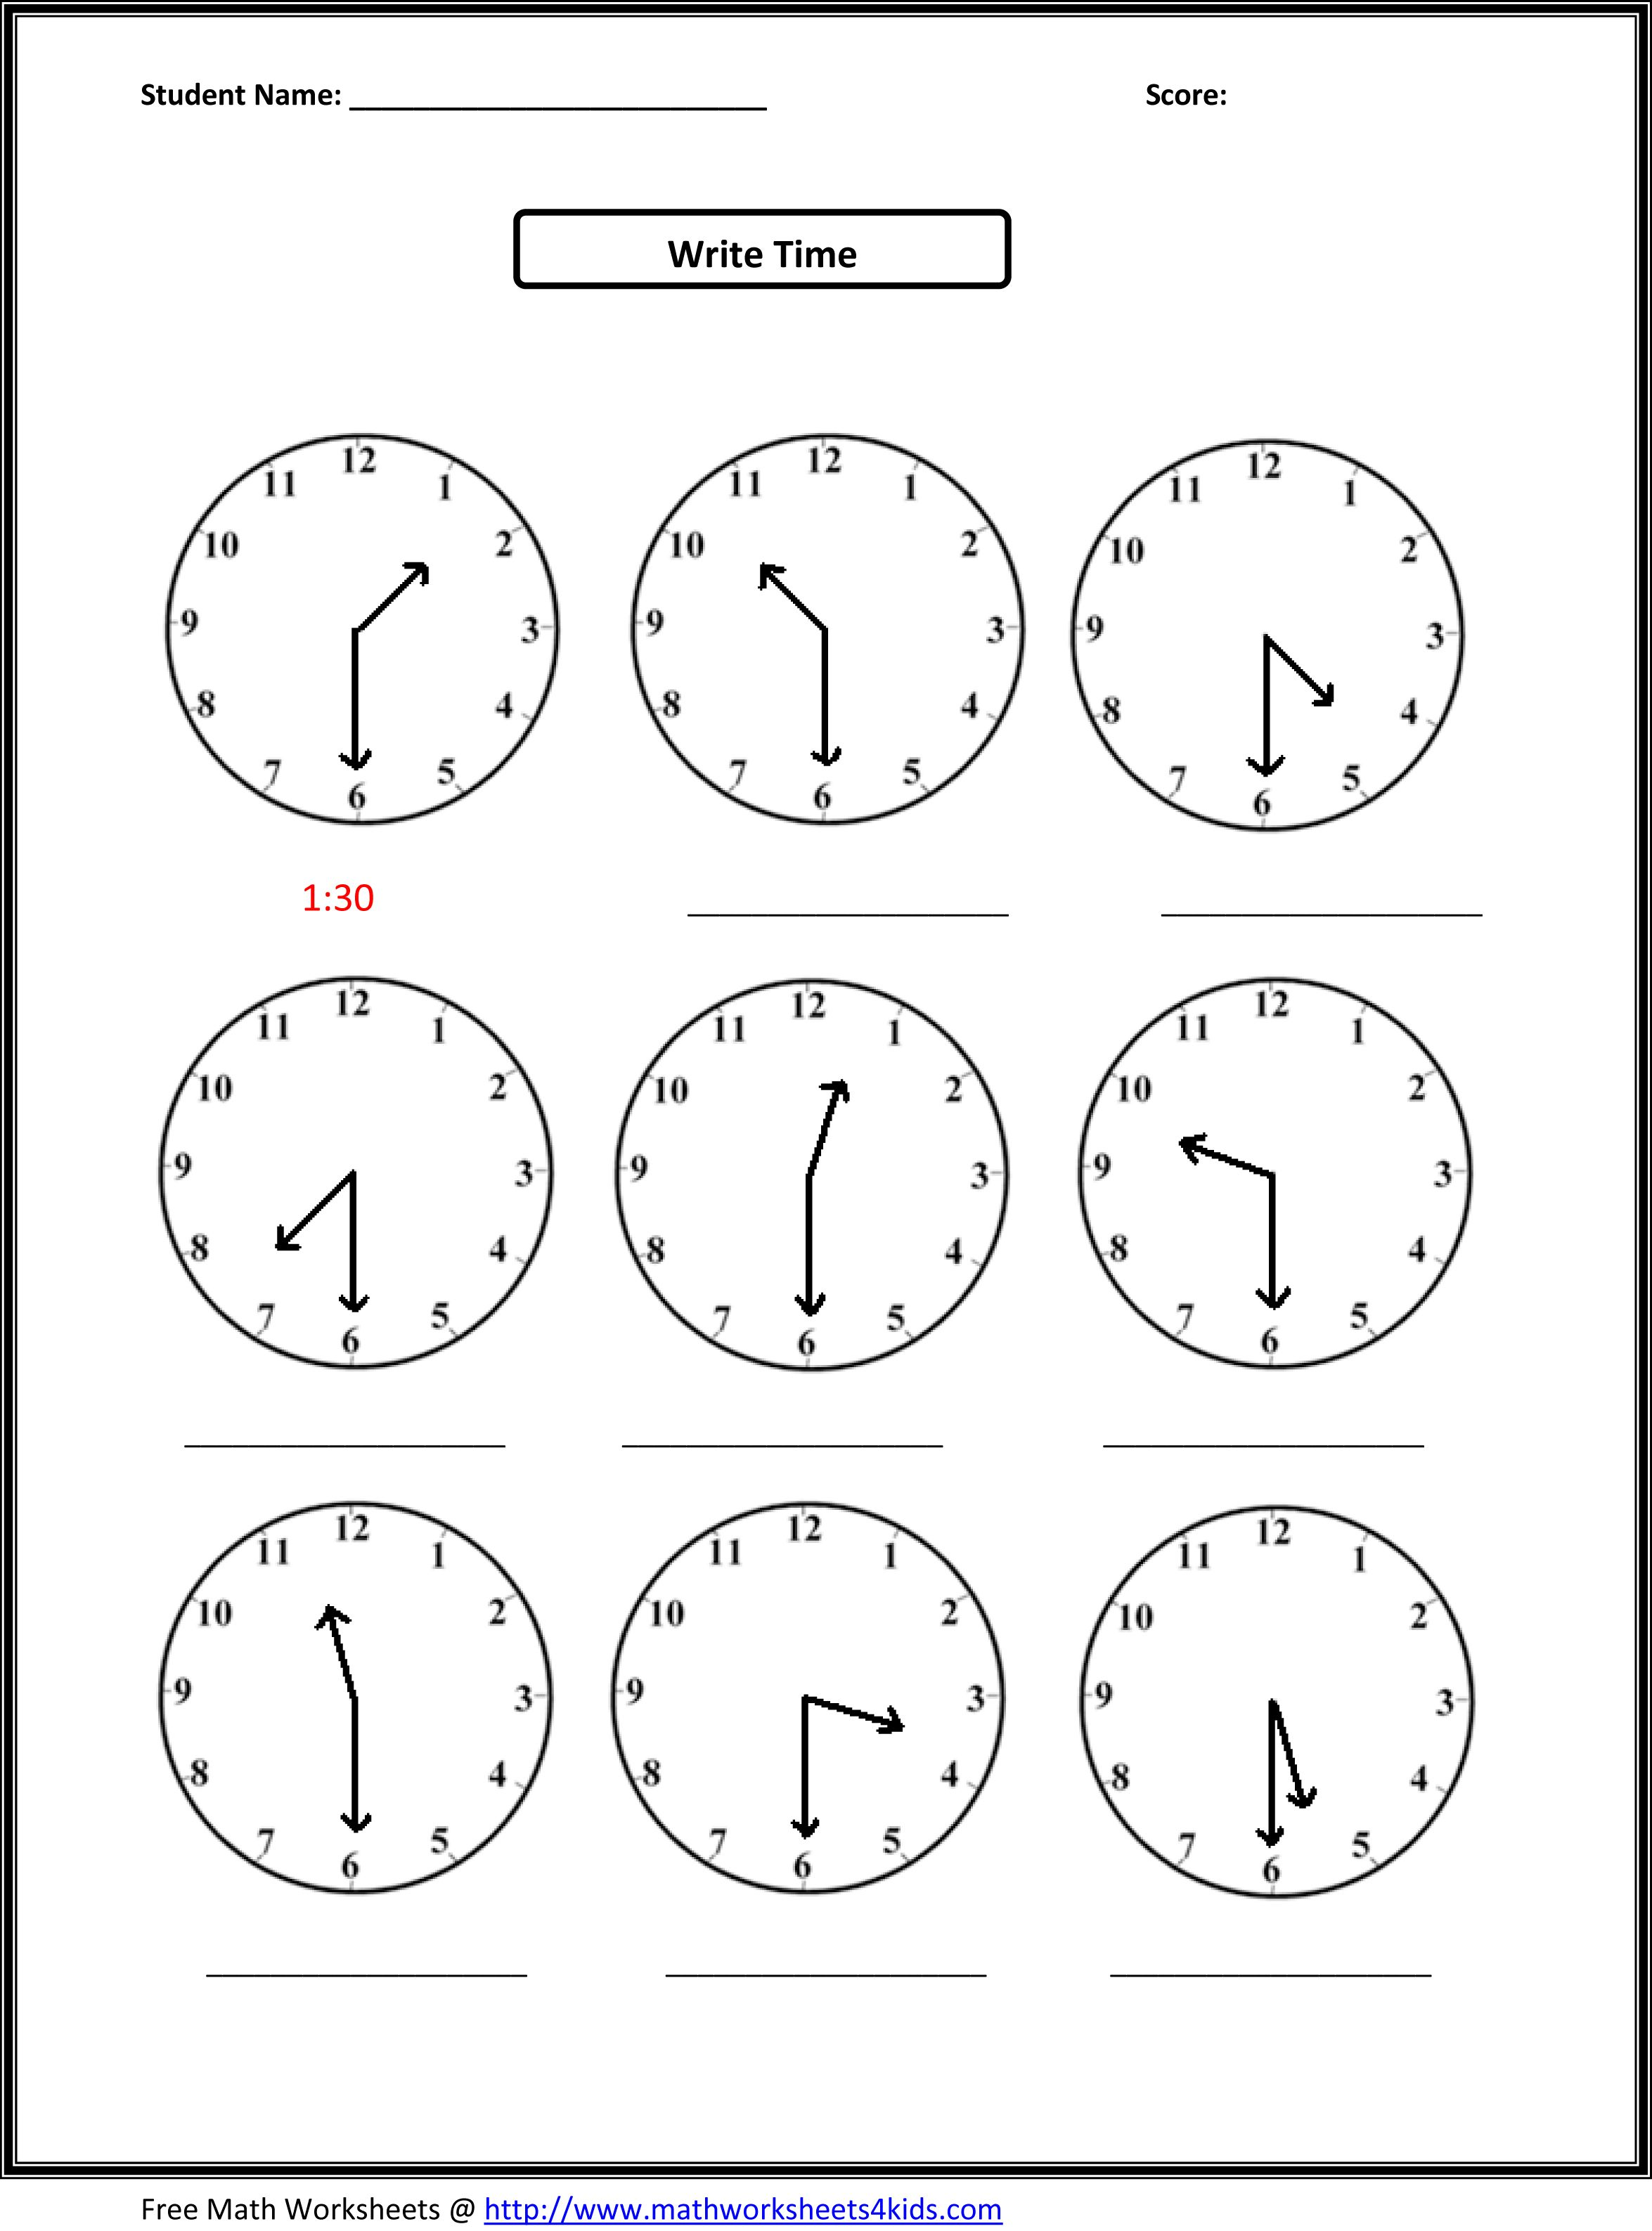 Weirdmailus  Terrific Worksheet On Time For Grade   Reocurent With Likable Free Printable Telling Time Worksheets Nd Grade  Reocurent With Awesome Dna History Worksheet Also High School Editing Worksheets In Addition More And Less Worksheets For Preschool And Worksheets On Indefinite Pronouns As Well As Microsoft Excel Worksheet Free Download Additionally Be Verbs Worksheets For Grade  From Reocurentcom With Weirdmailus  Likable Worksheet On Time For Grade   Reocurent With Awesome Free Printable Telling Time Worksheets Nd Grade  Reocurent And Terrific Dna History Worksheet Also High School Editing Worksheets In Addition More And Less Worksheets For Preschool From Reocurentcom